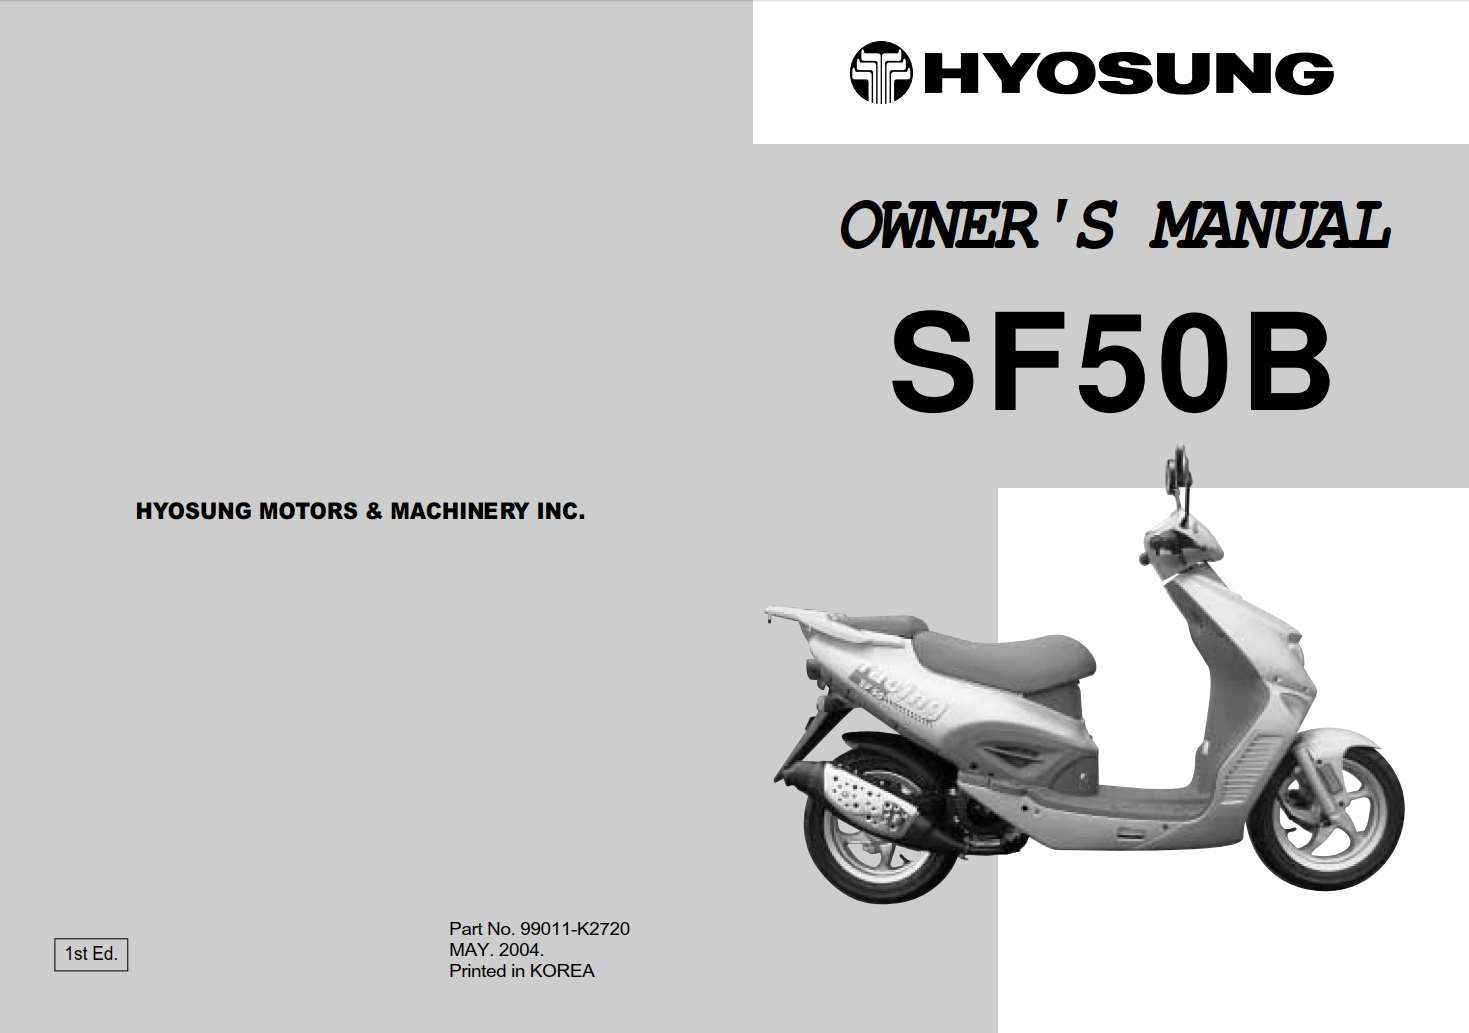 Hyosung Sf50b 2004 Owner S Manual Has Been Published On Procarmanuals Com Https Procarmanuals Com Hyosung Sf50b 2004 Owners Manu In 2020 Owners Manuals Manual Owners